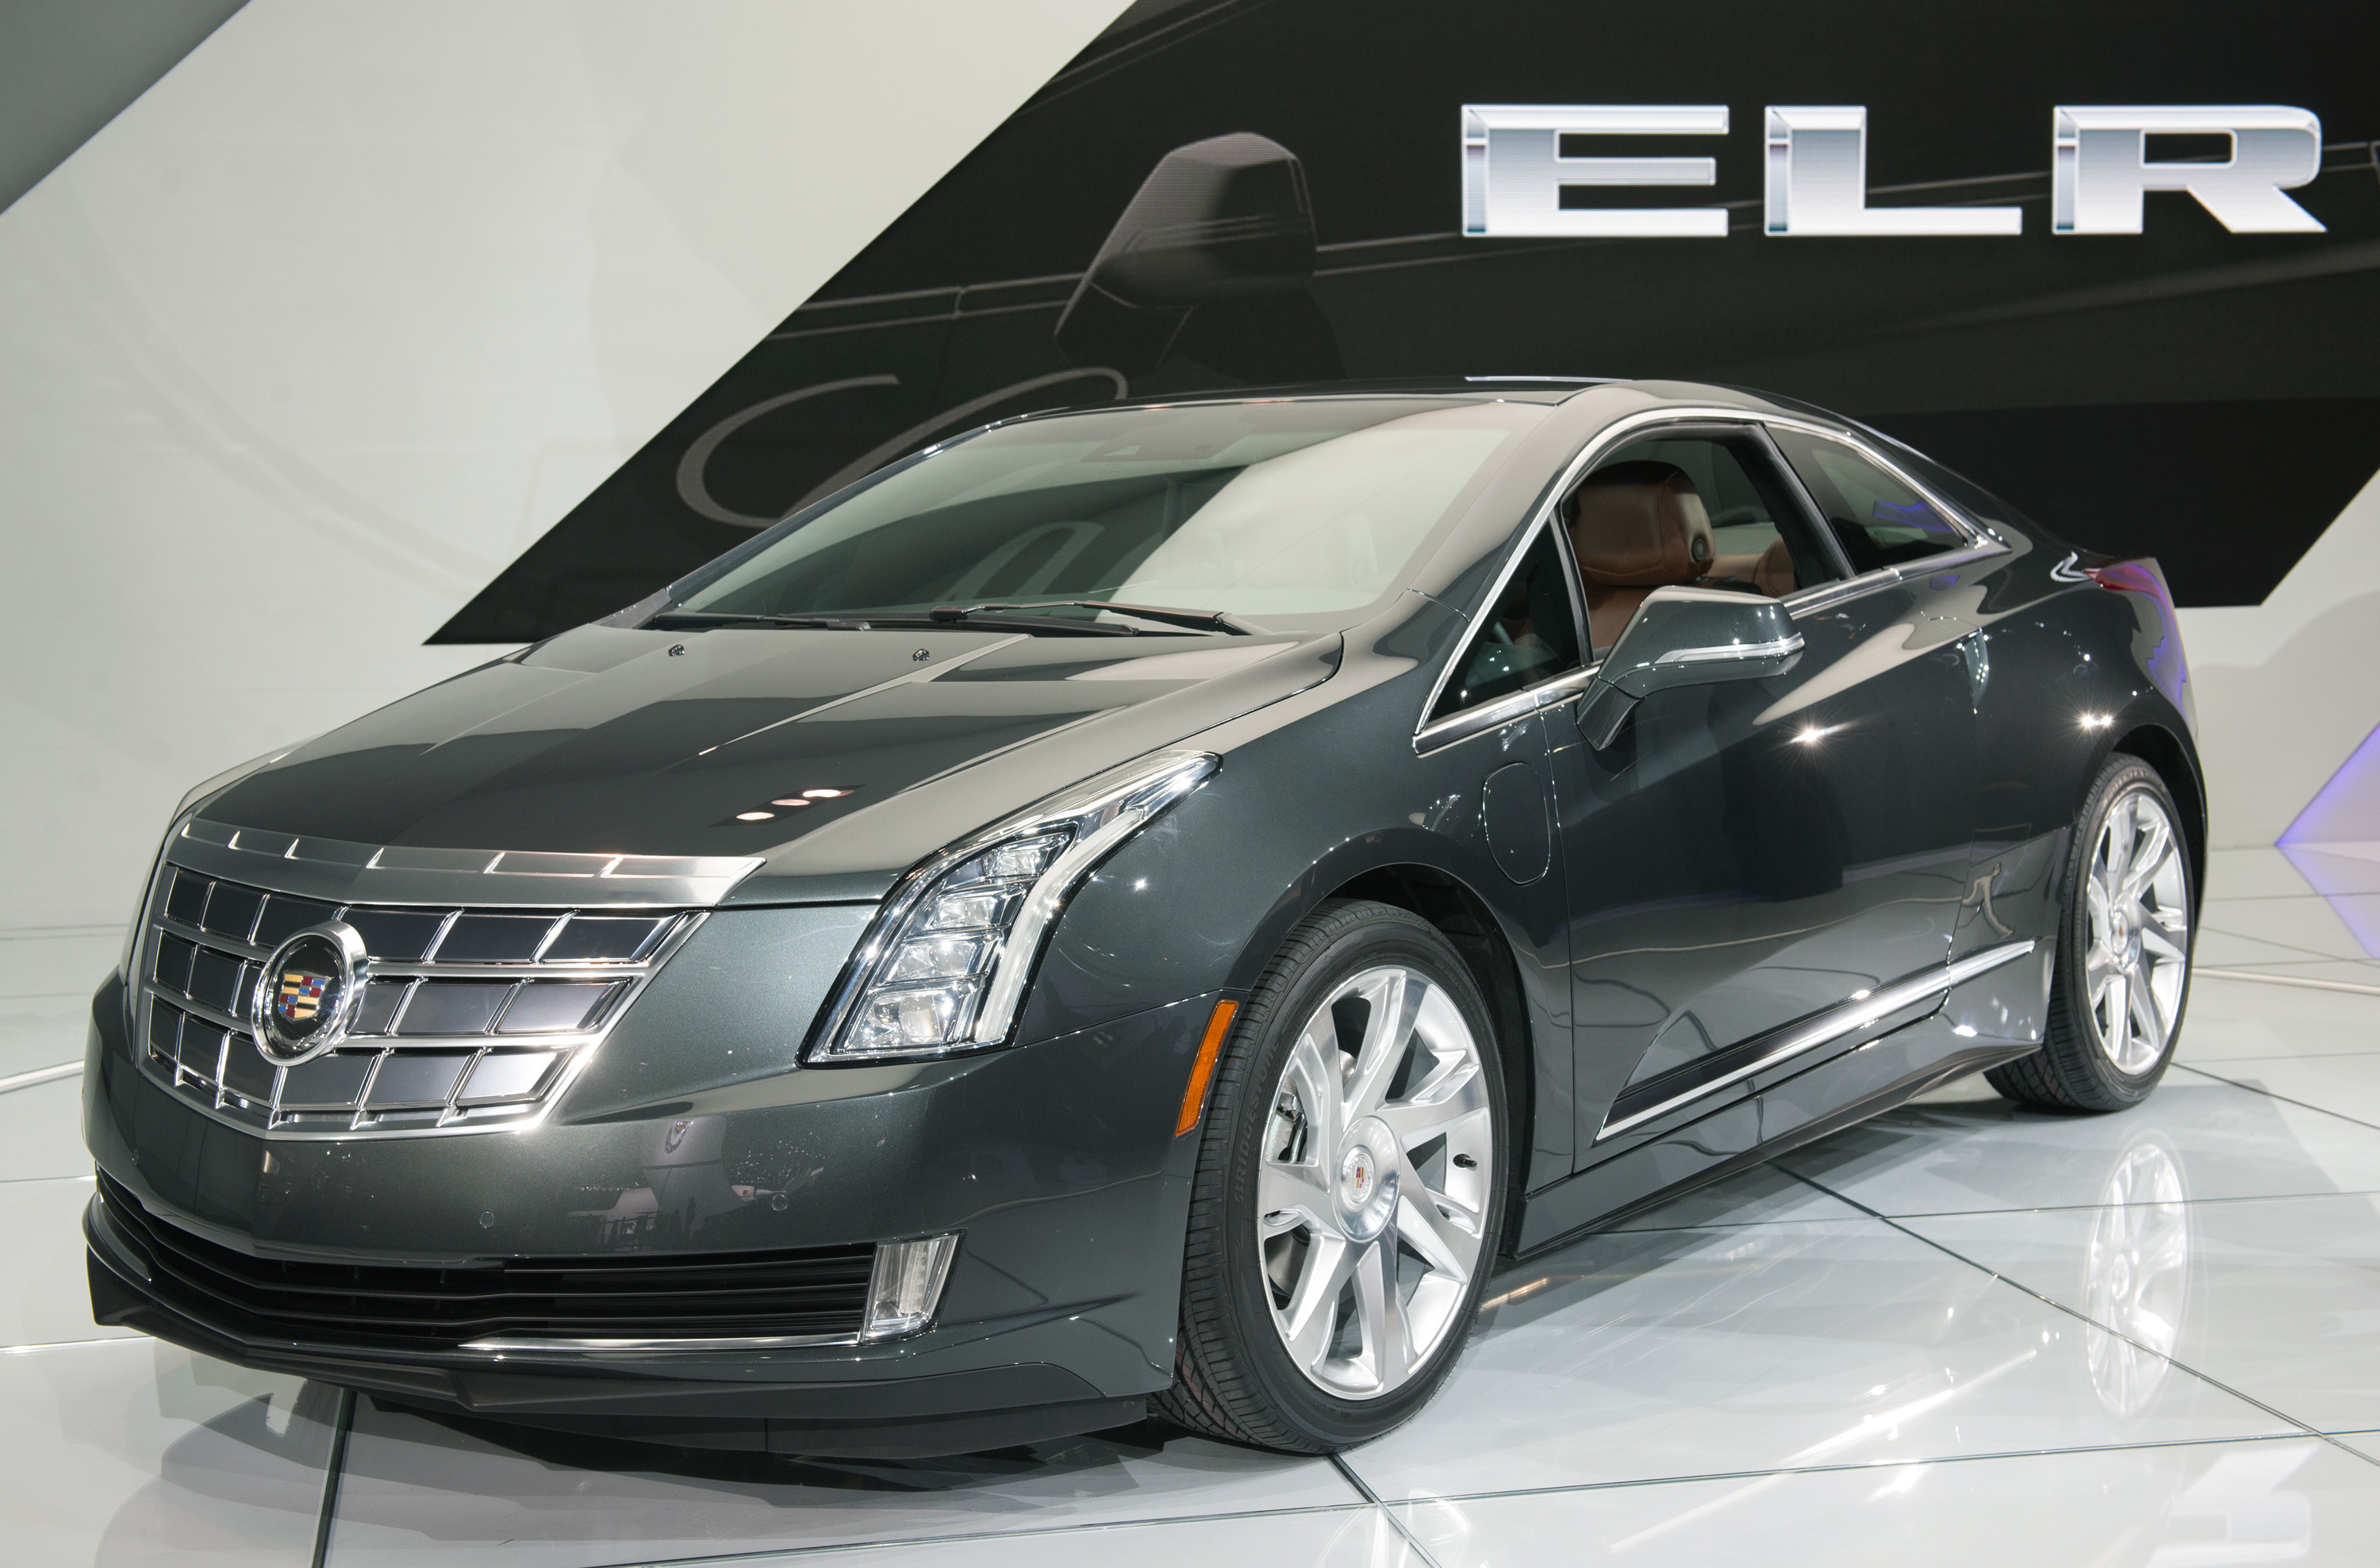 The 2014 Cadillac ELR wins the Eyes On Design Best Production Vehicle Award Tuesday, January 15, 2013 at the North American International Auto Show in Detroit, Michigan. (Photo by Steve Fecht for Cadillac)